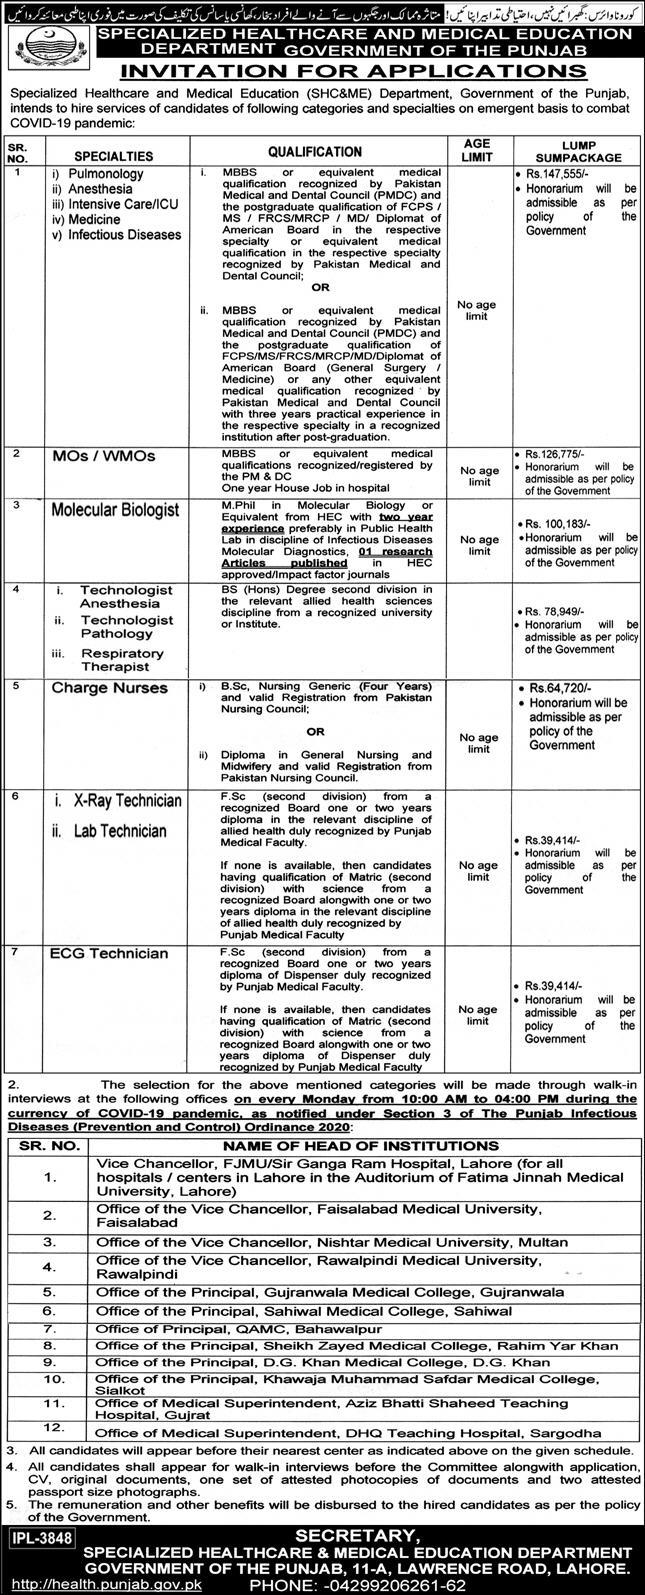 SHC&ME Health Department Jobs 2020 for Medical Specialist